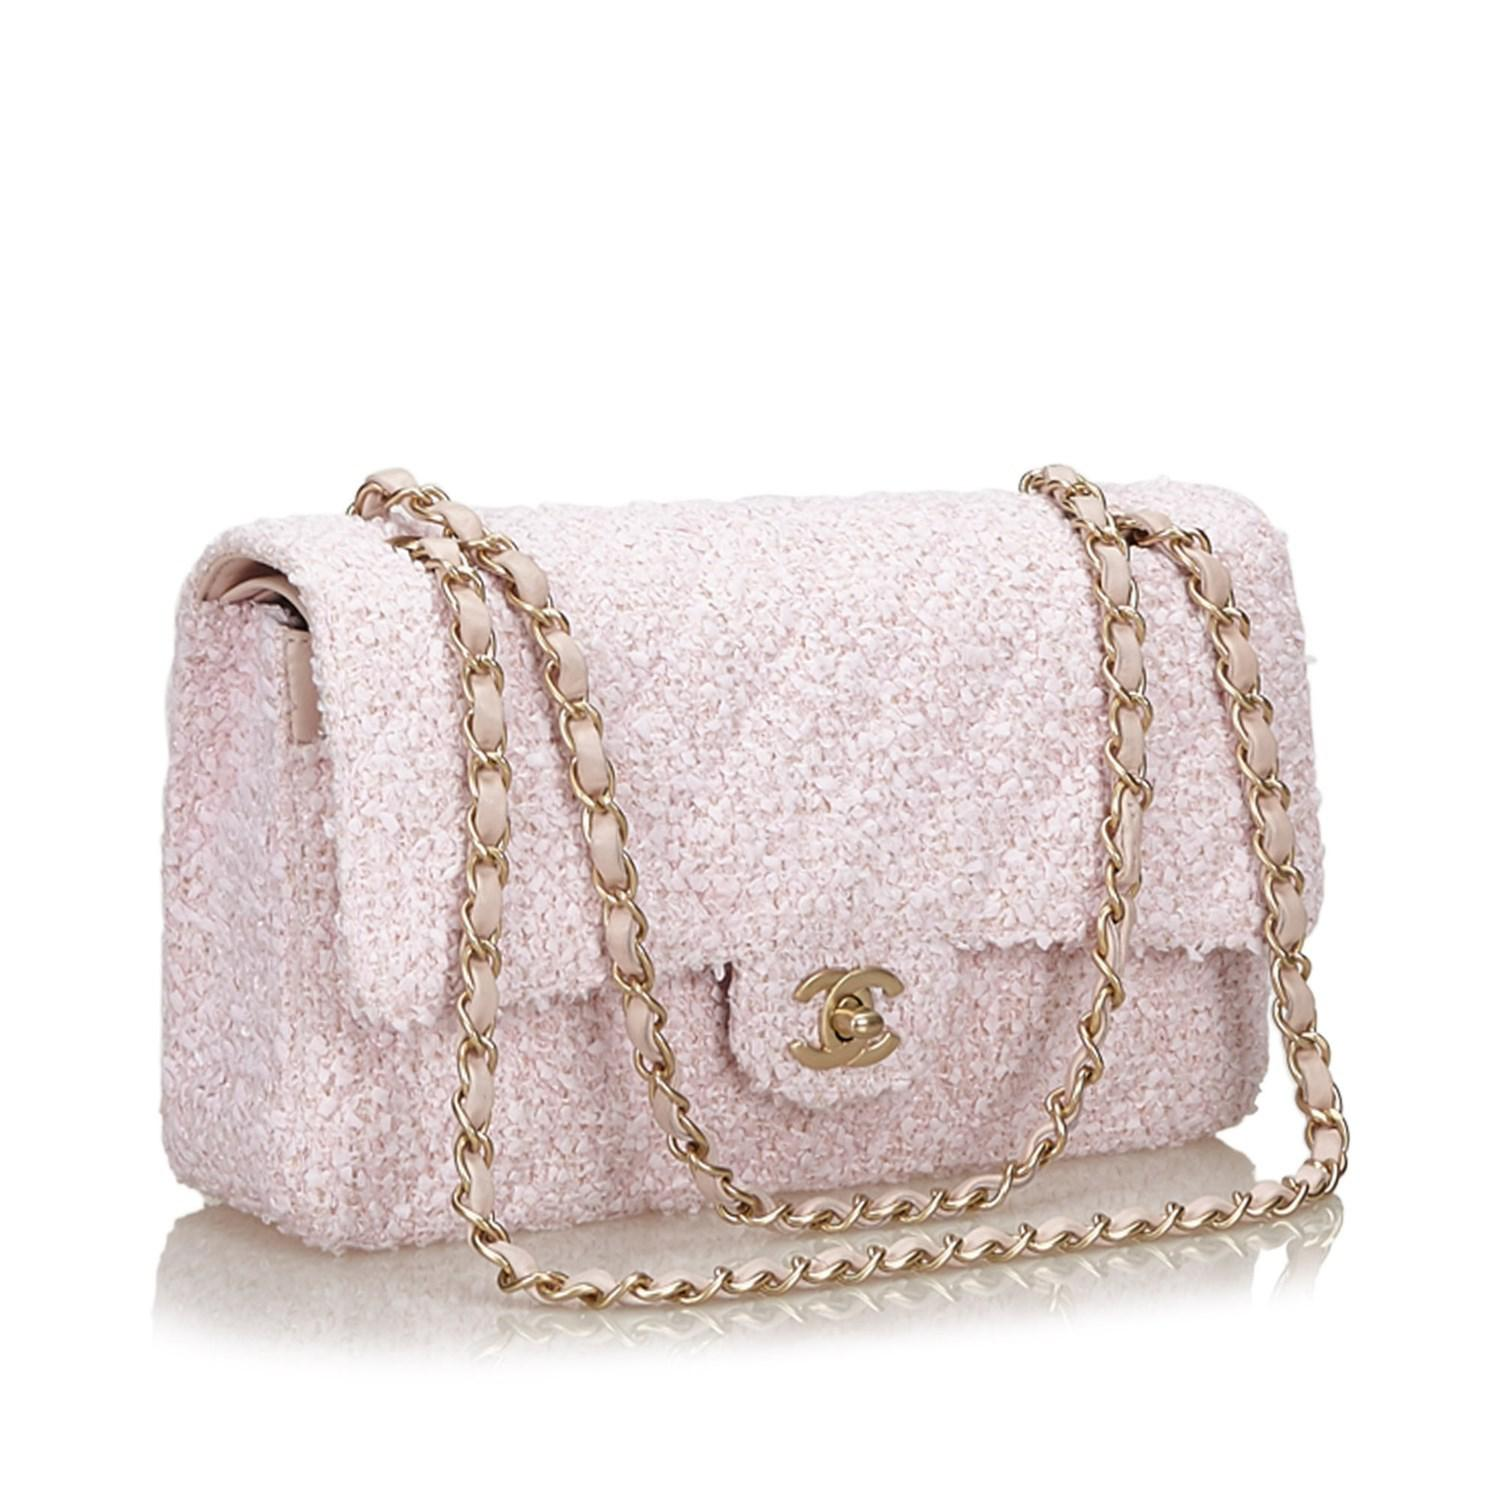 d10151df34f8ae Chanel Small Classic Tweed Double Flap Bag in Pink - Lyst